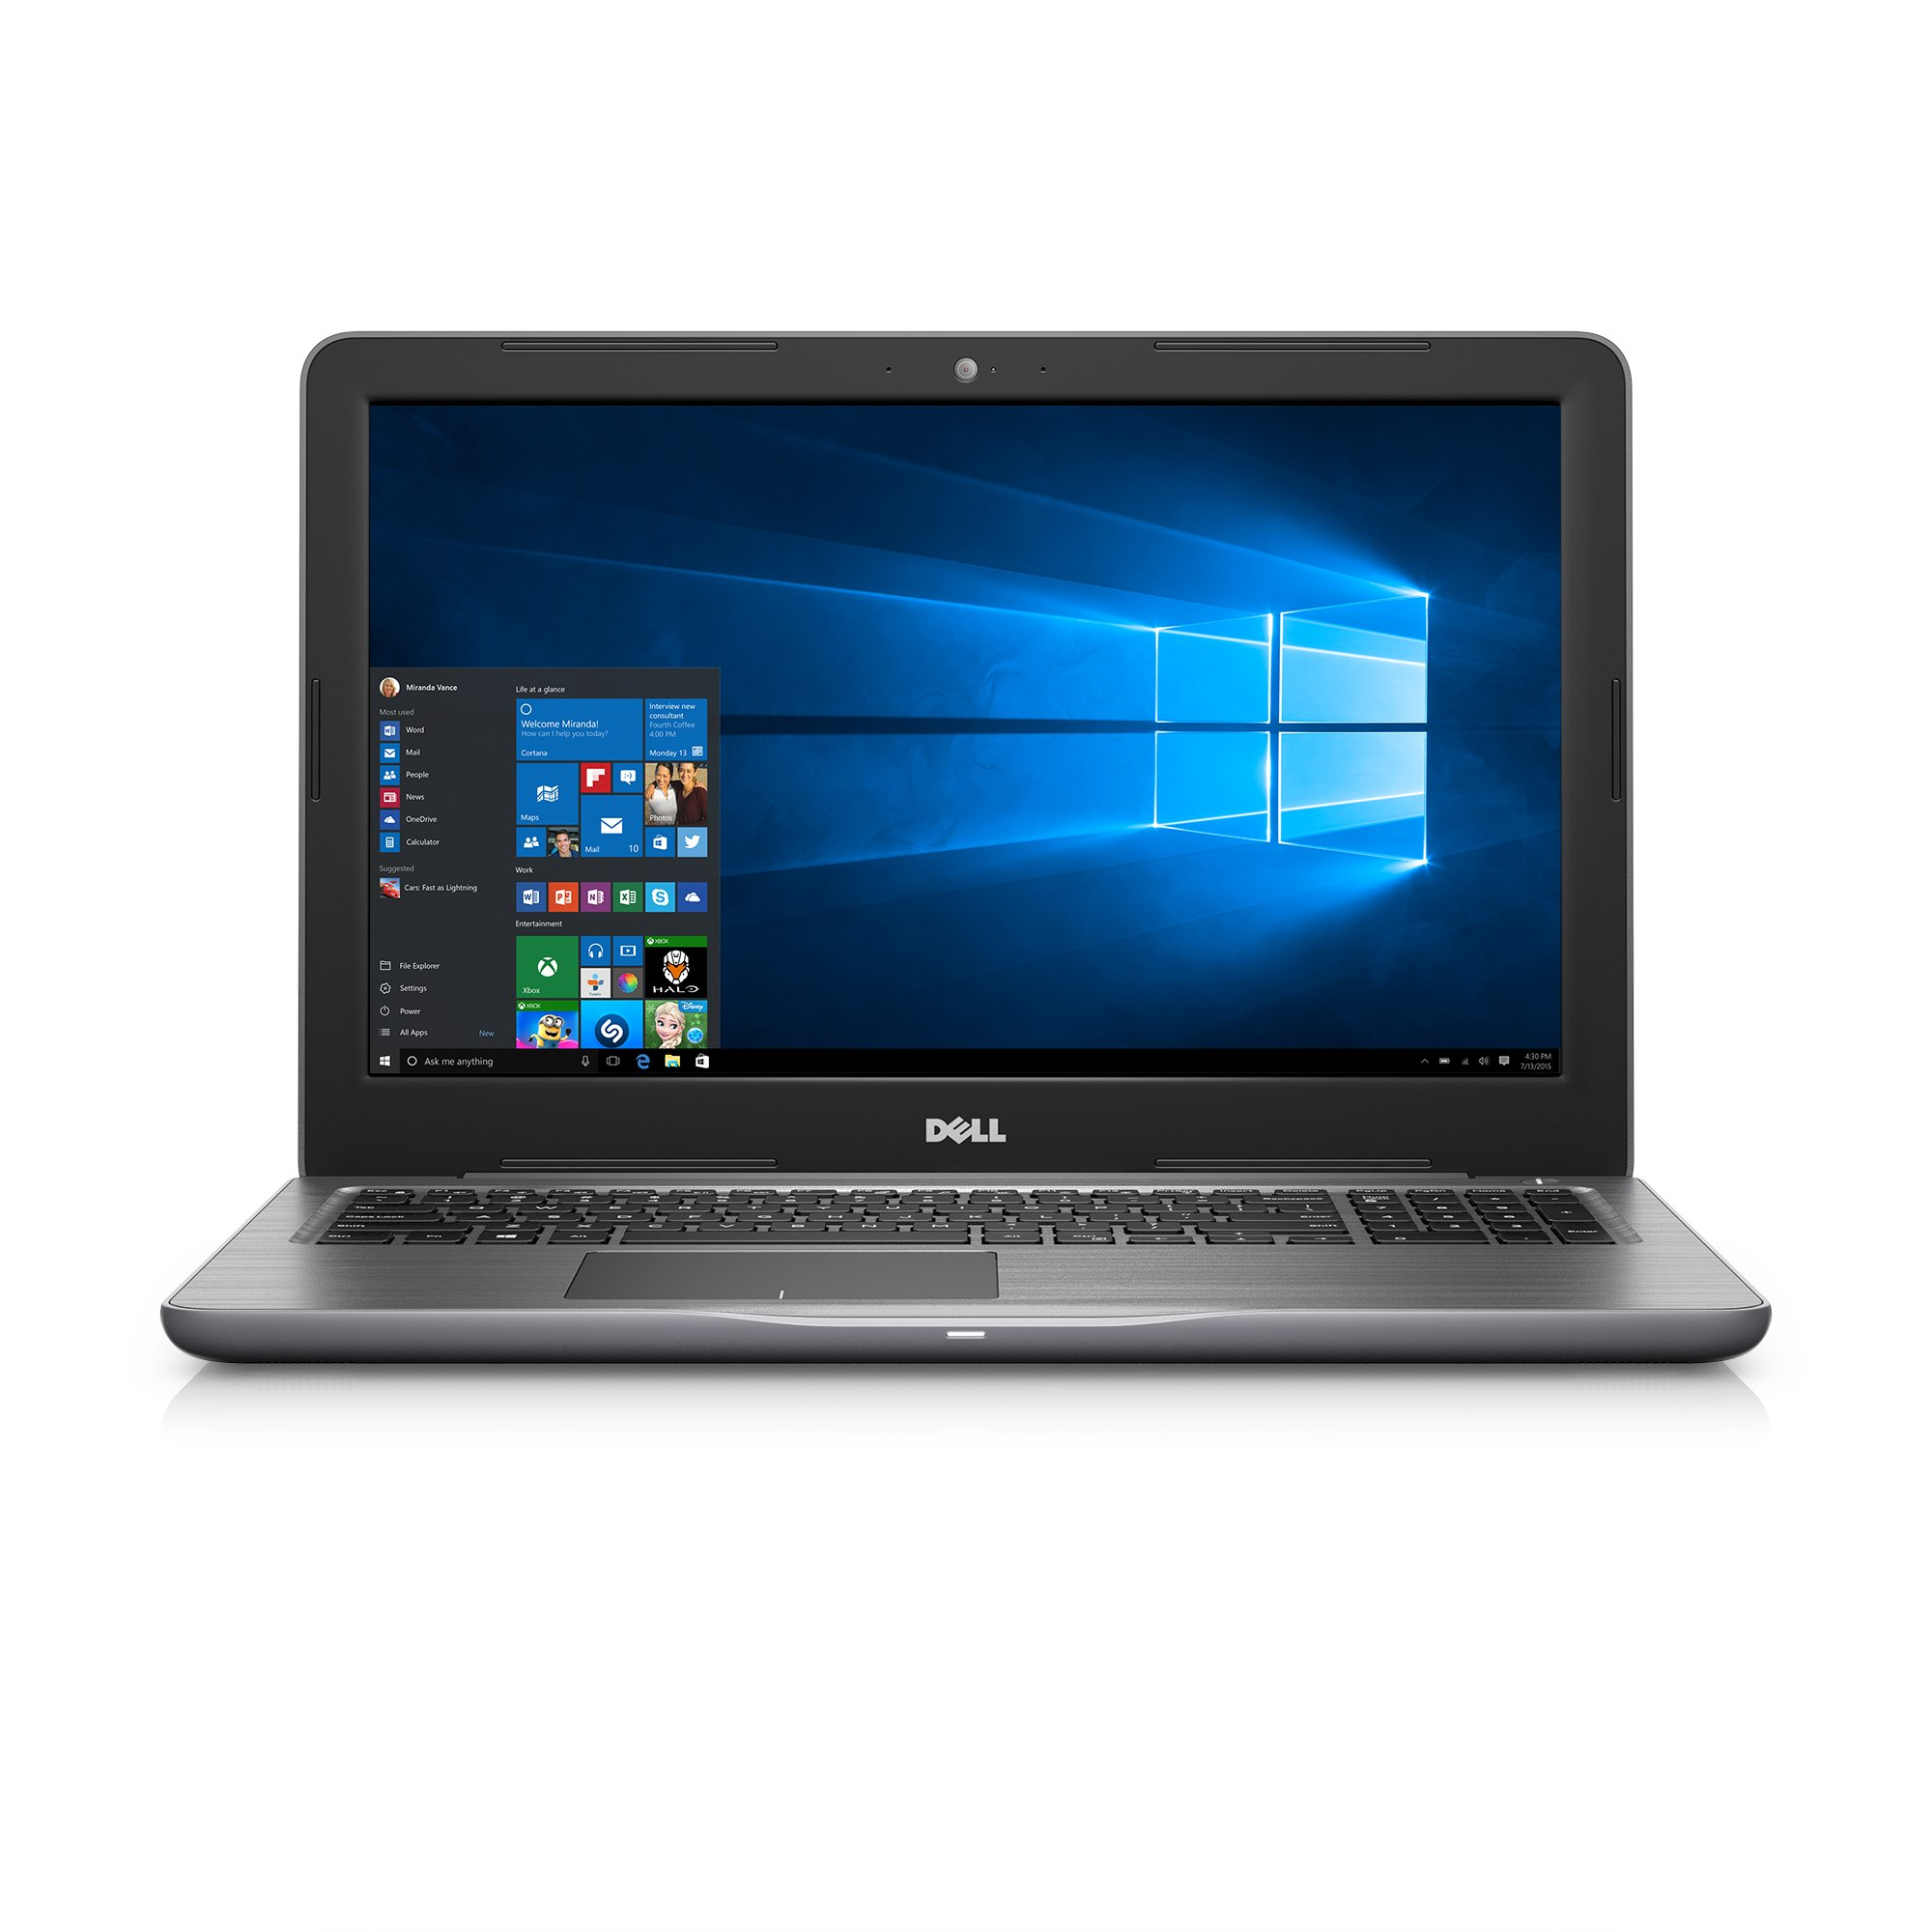 Dell Inspiron 15.6'' FHD Laptop (7th Generation Intel Core i7, 16GB RAM, 1 TB HDD, AMD Radeon R7 M445 Graphics) (i5567-7292GRY)